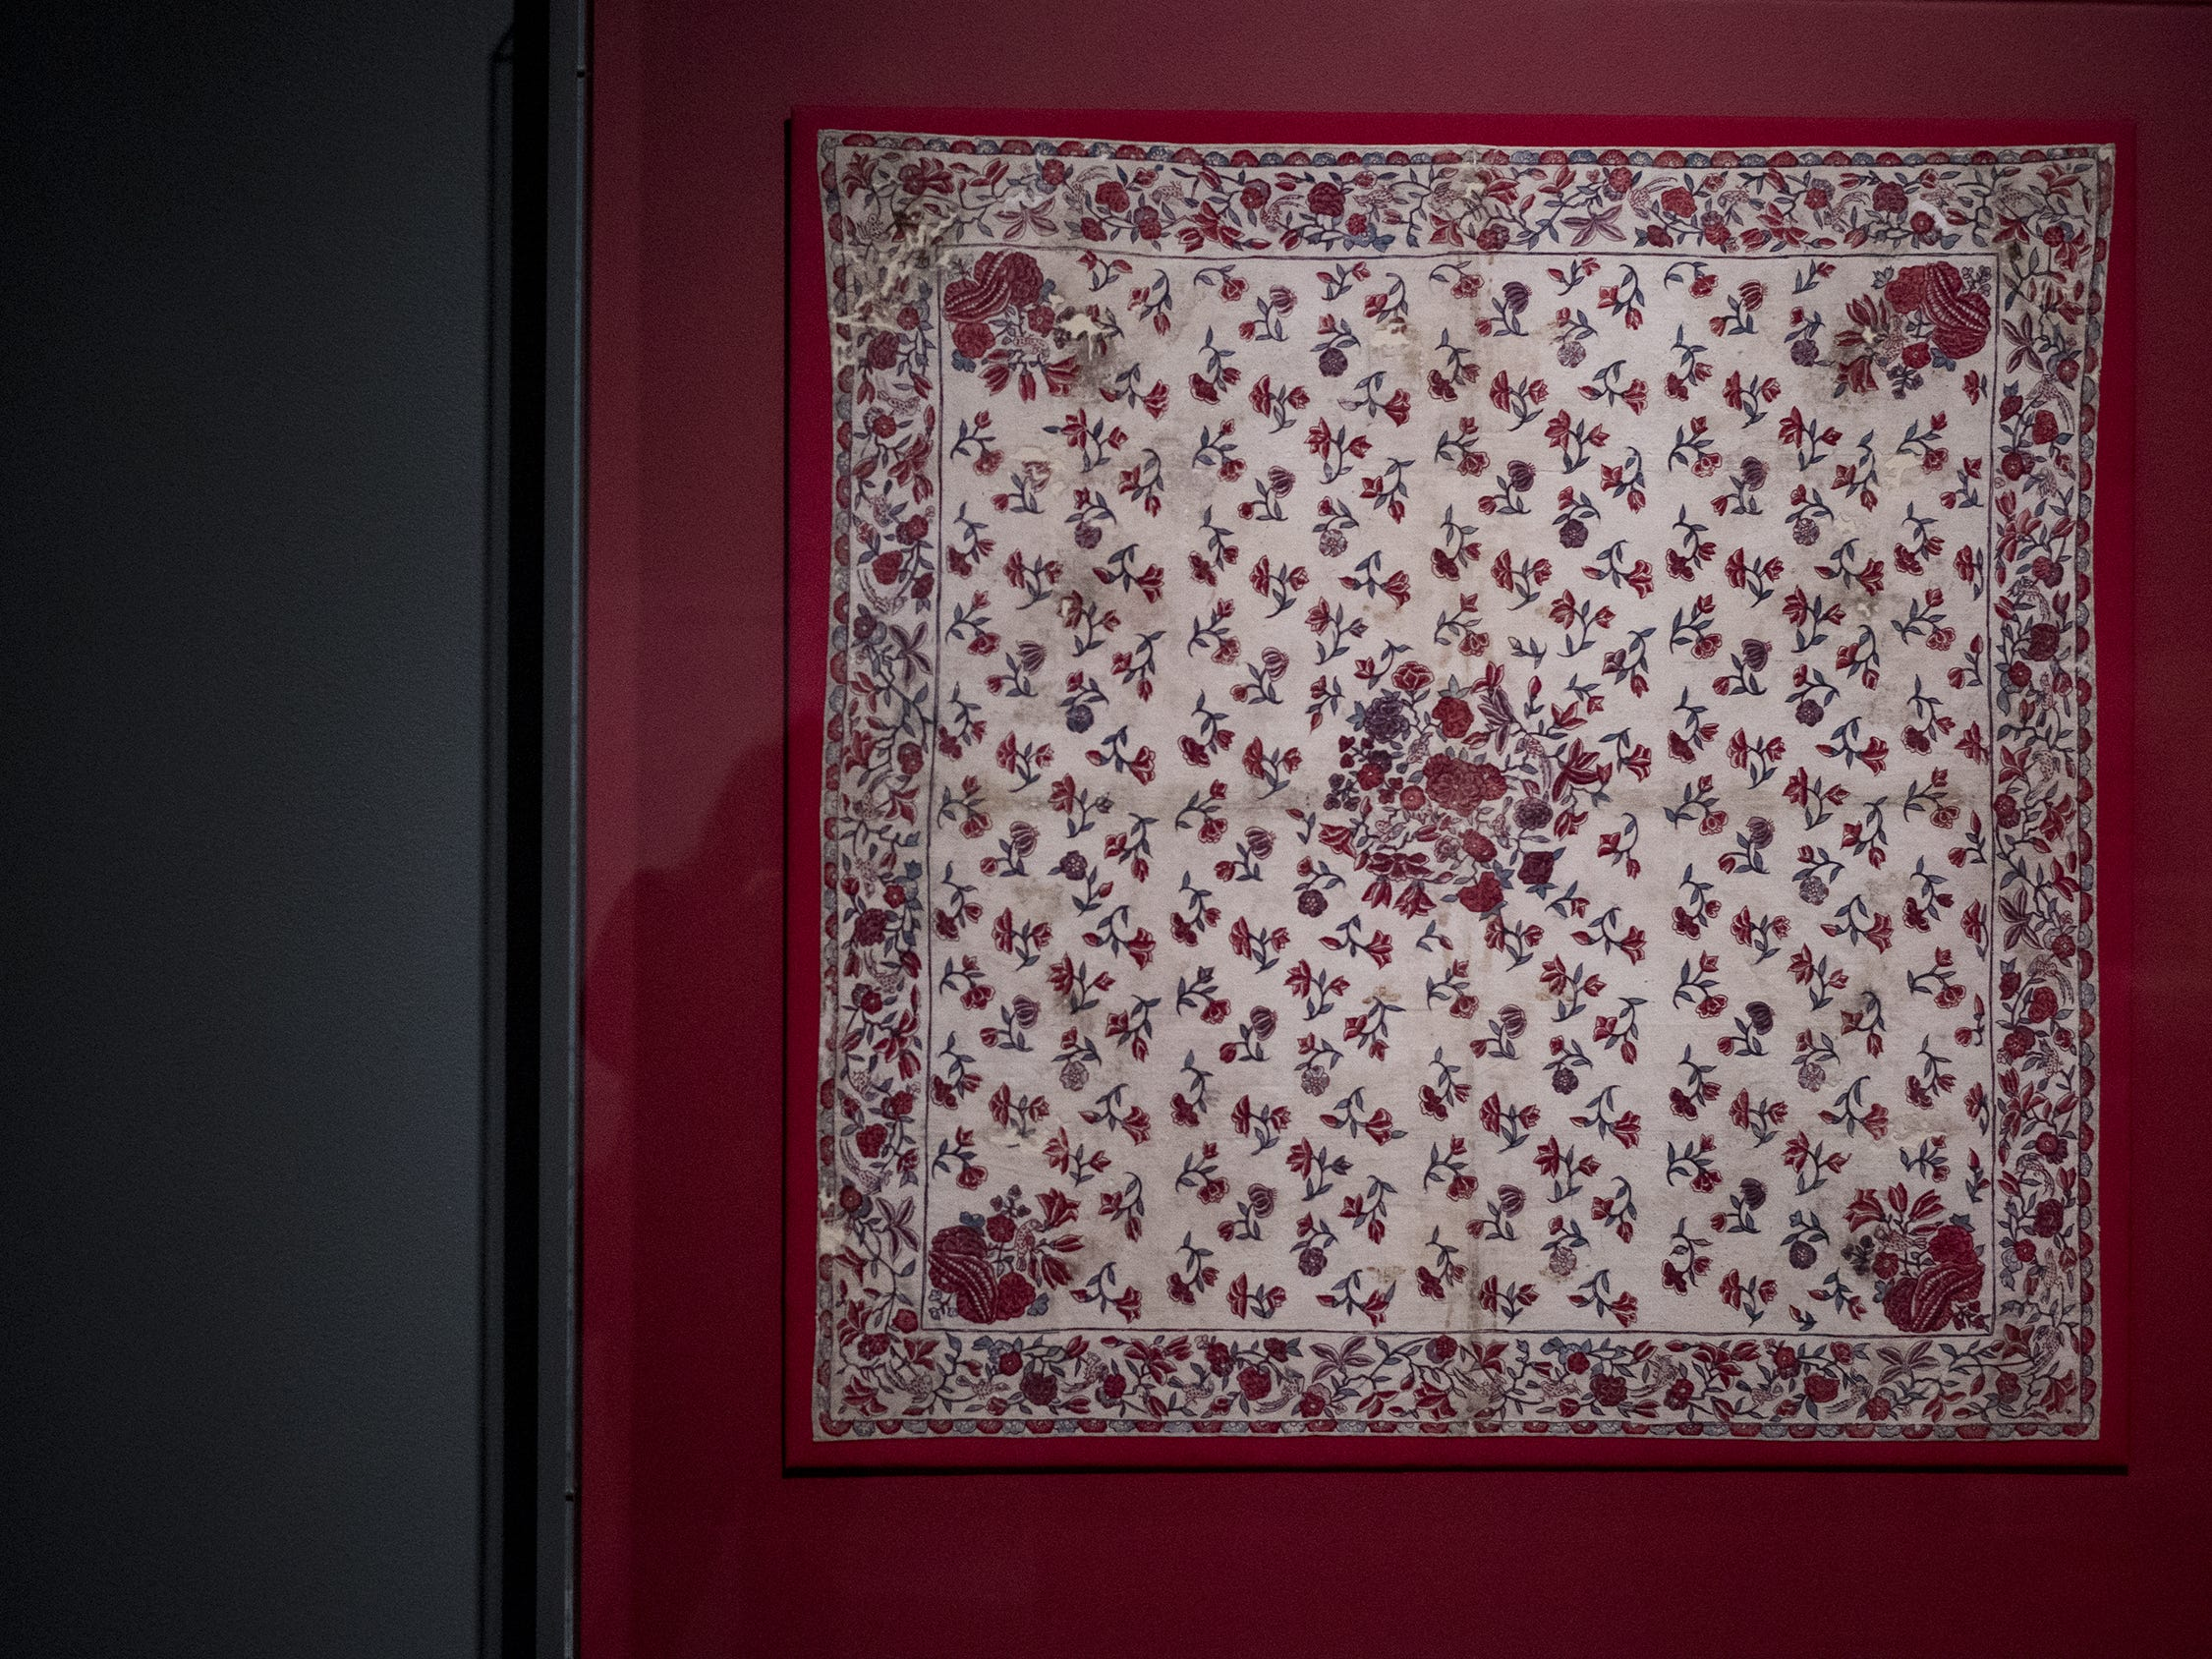 This Chintz handkerchief is a part of the new Fabrics of India exhibit at the Cincinnati Art Museum.